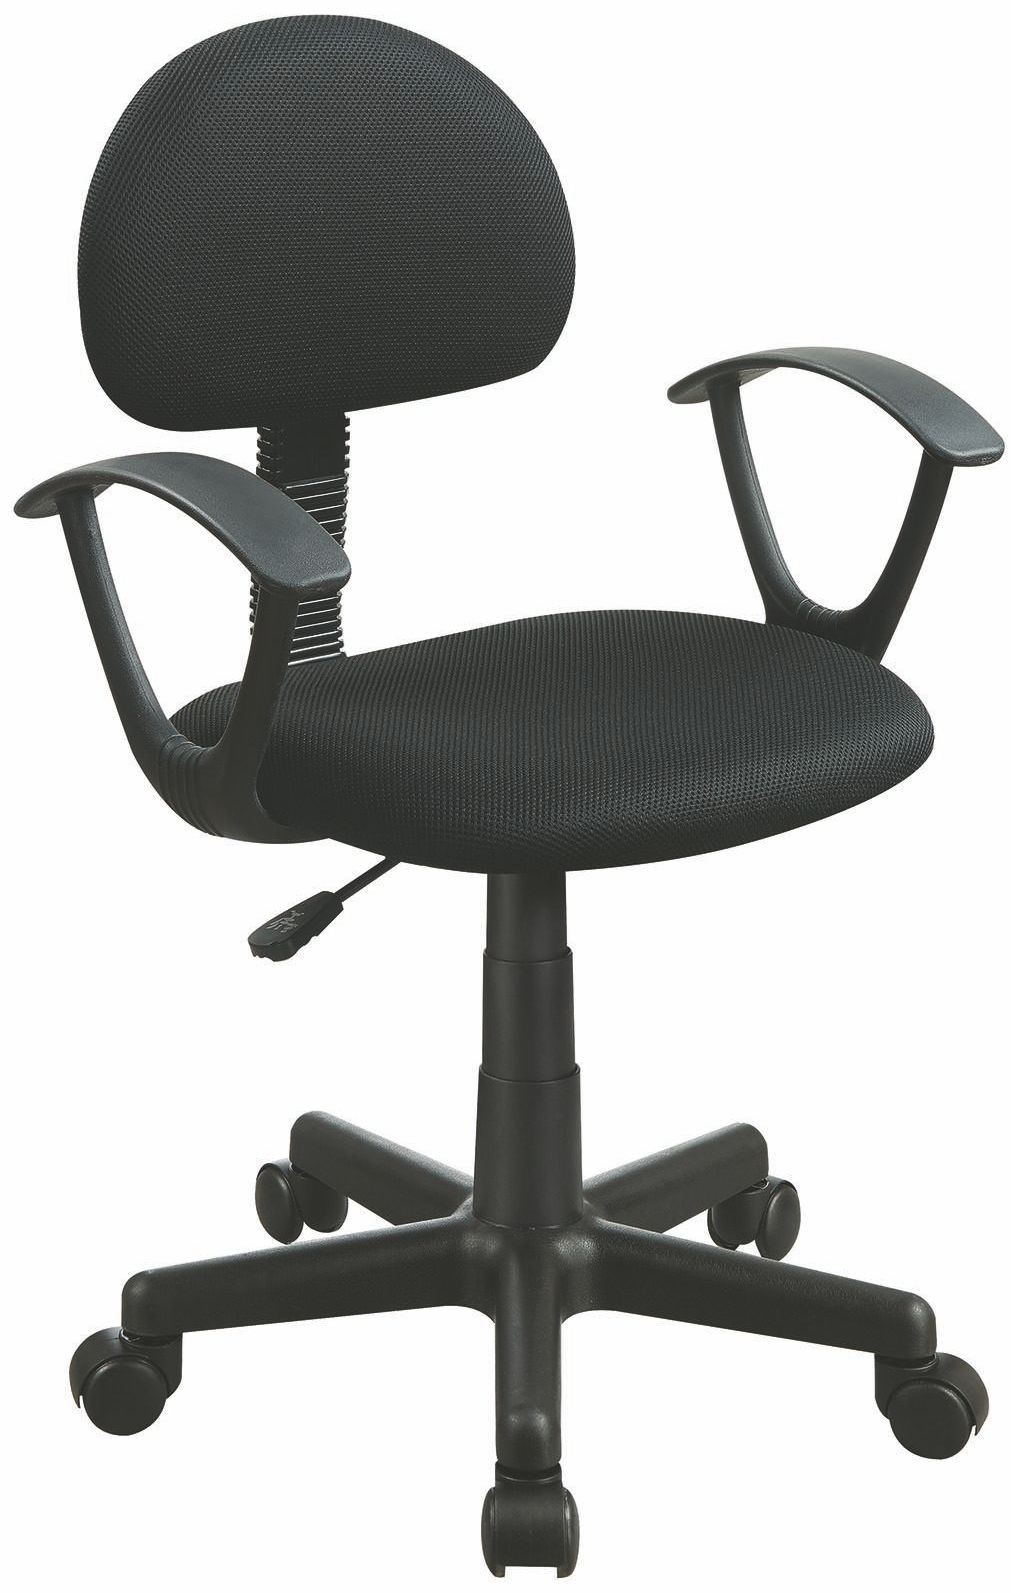 Black Swivel Office Chair 881050 Coaster Furniture